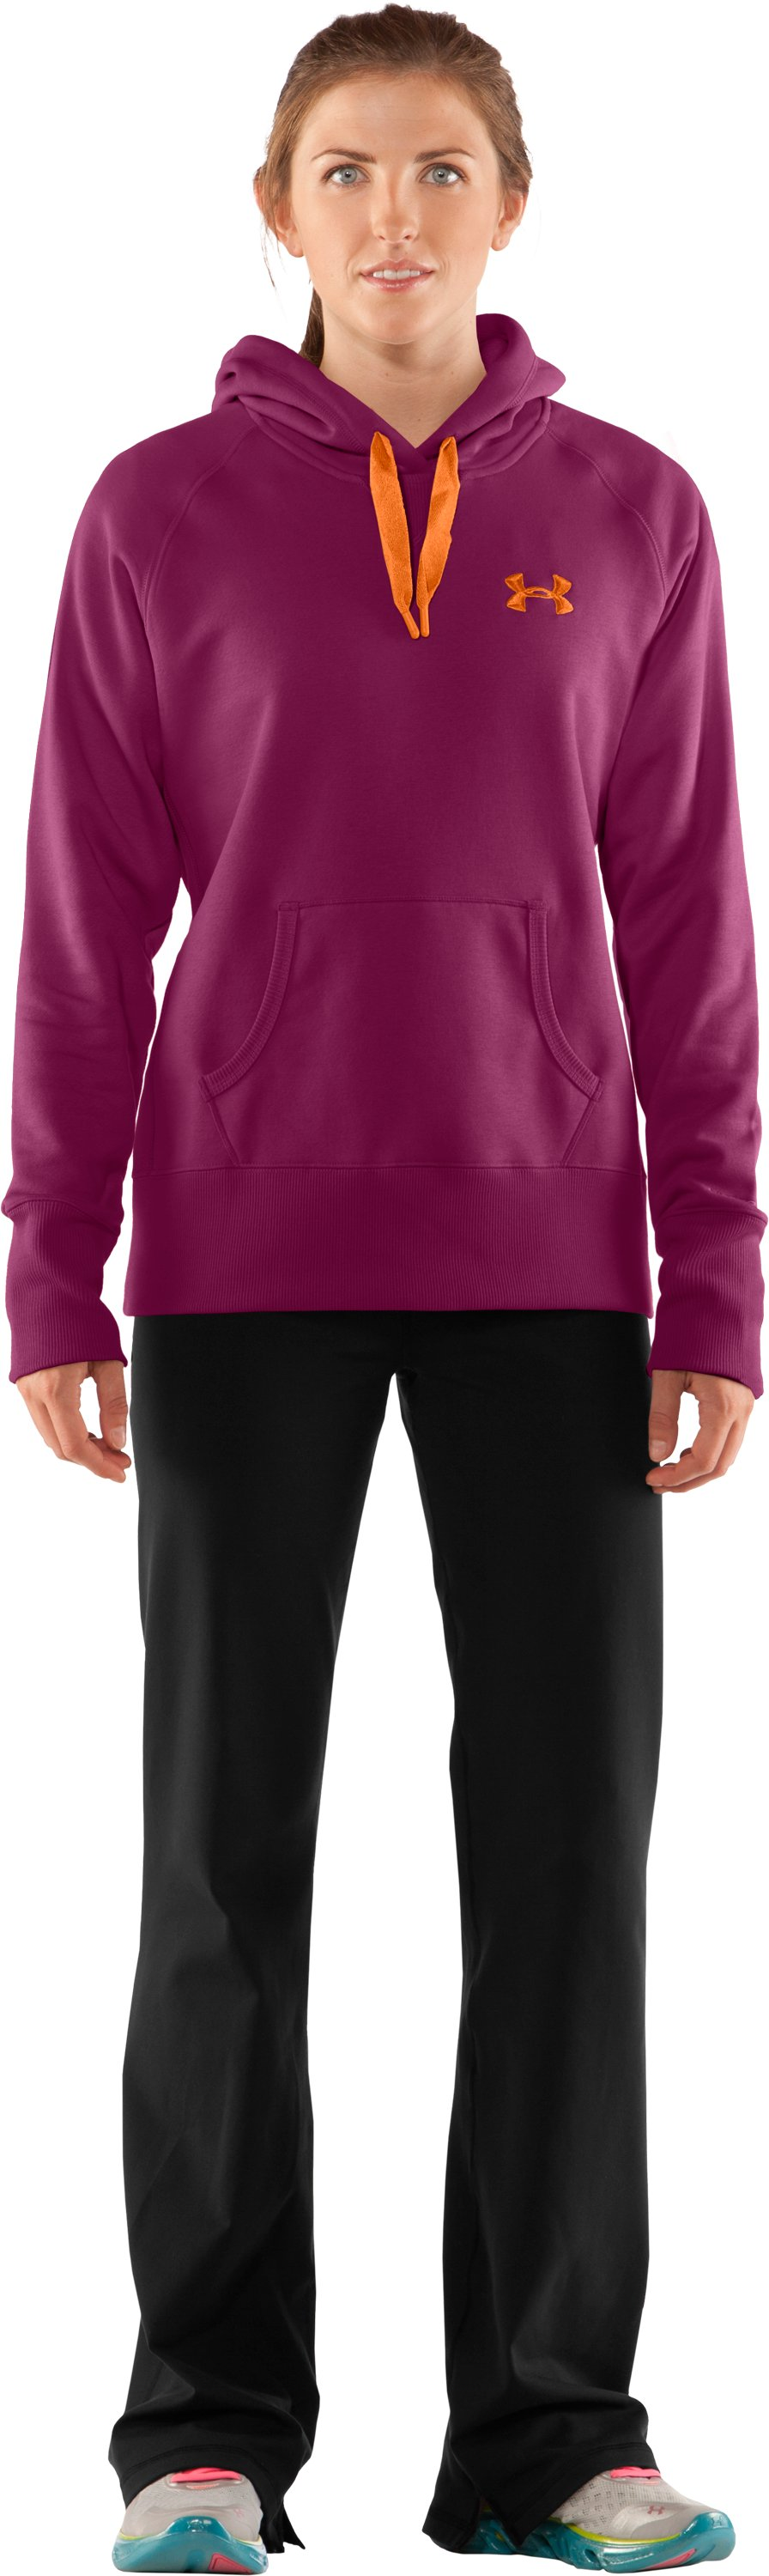 Women's Charged Cotton® Storm Hoodie, Rosewood, Front